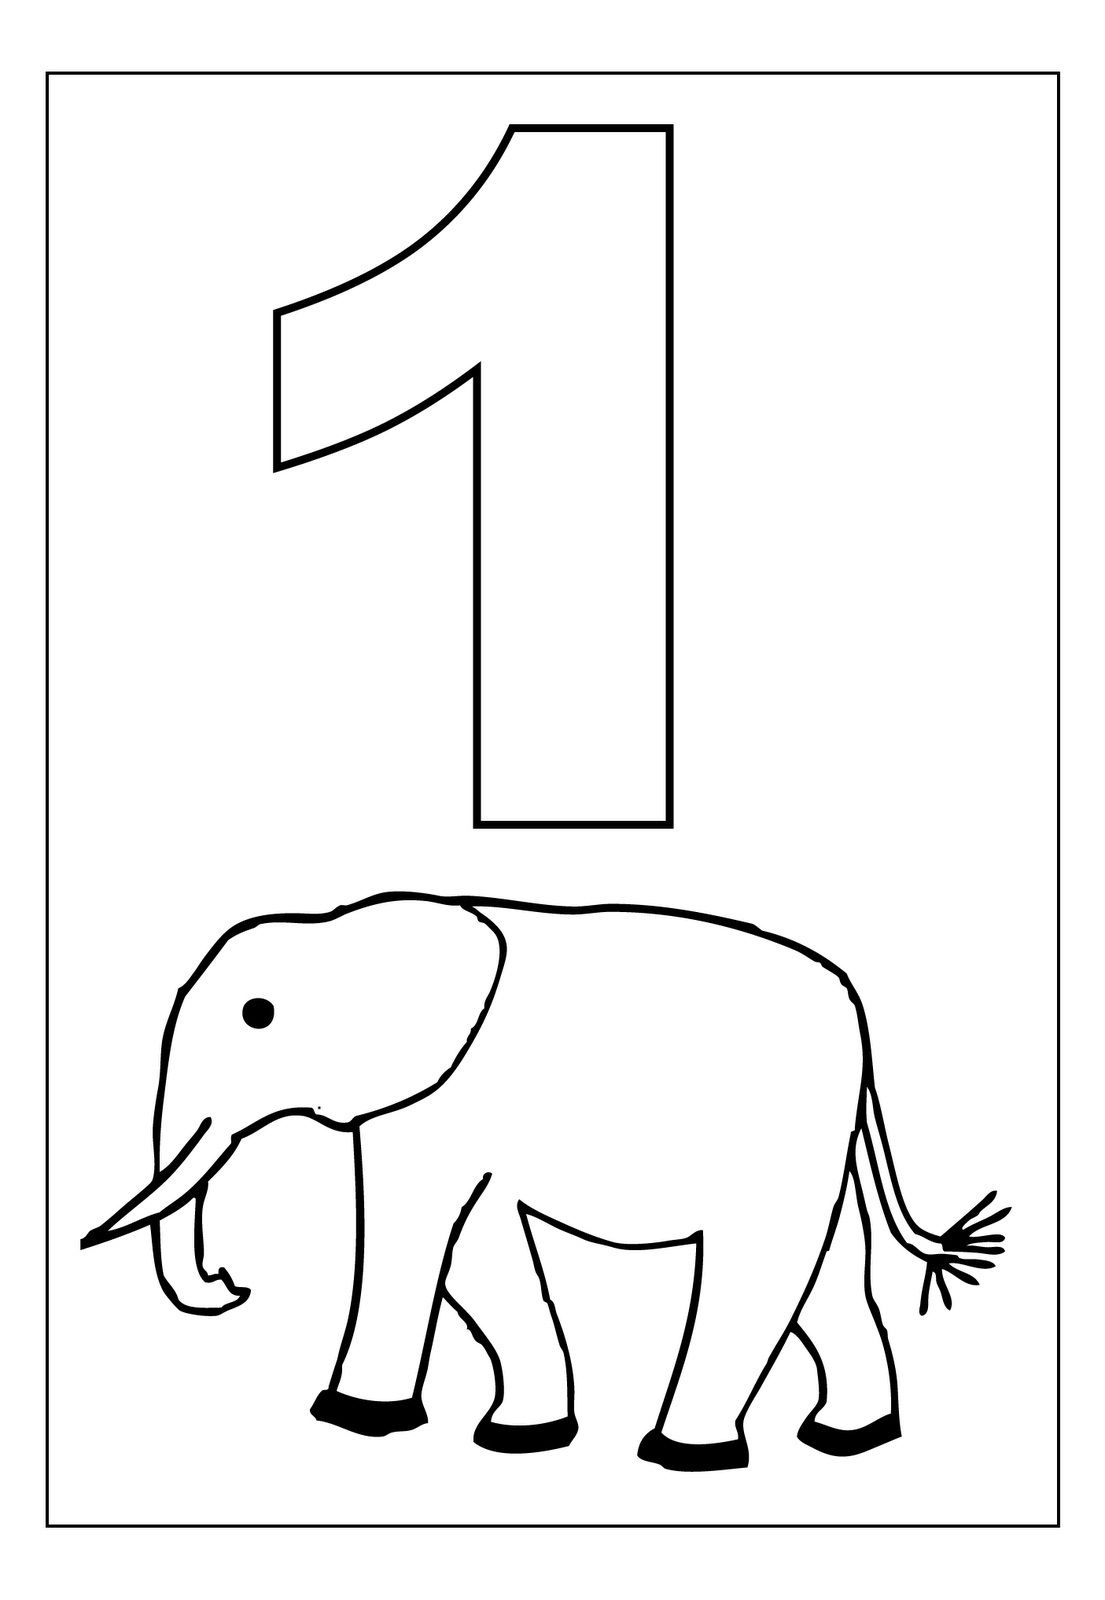 Free Printable Number Coloring Pages For Kids Sketch